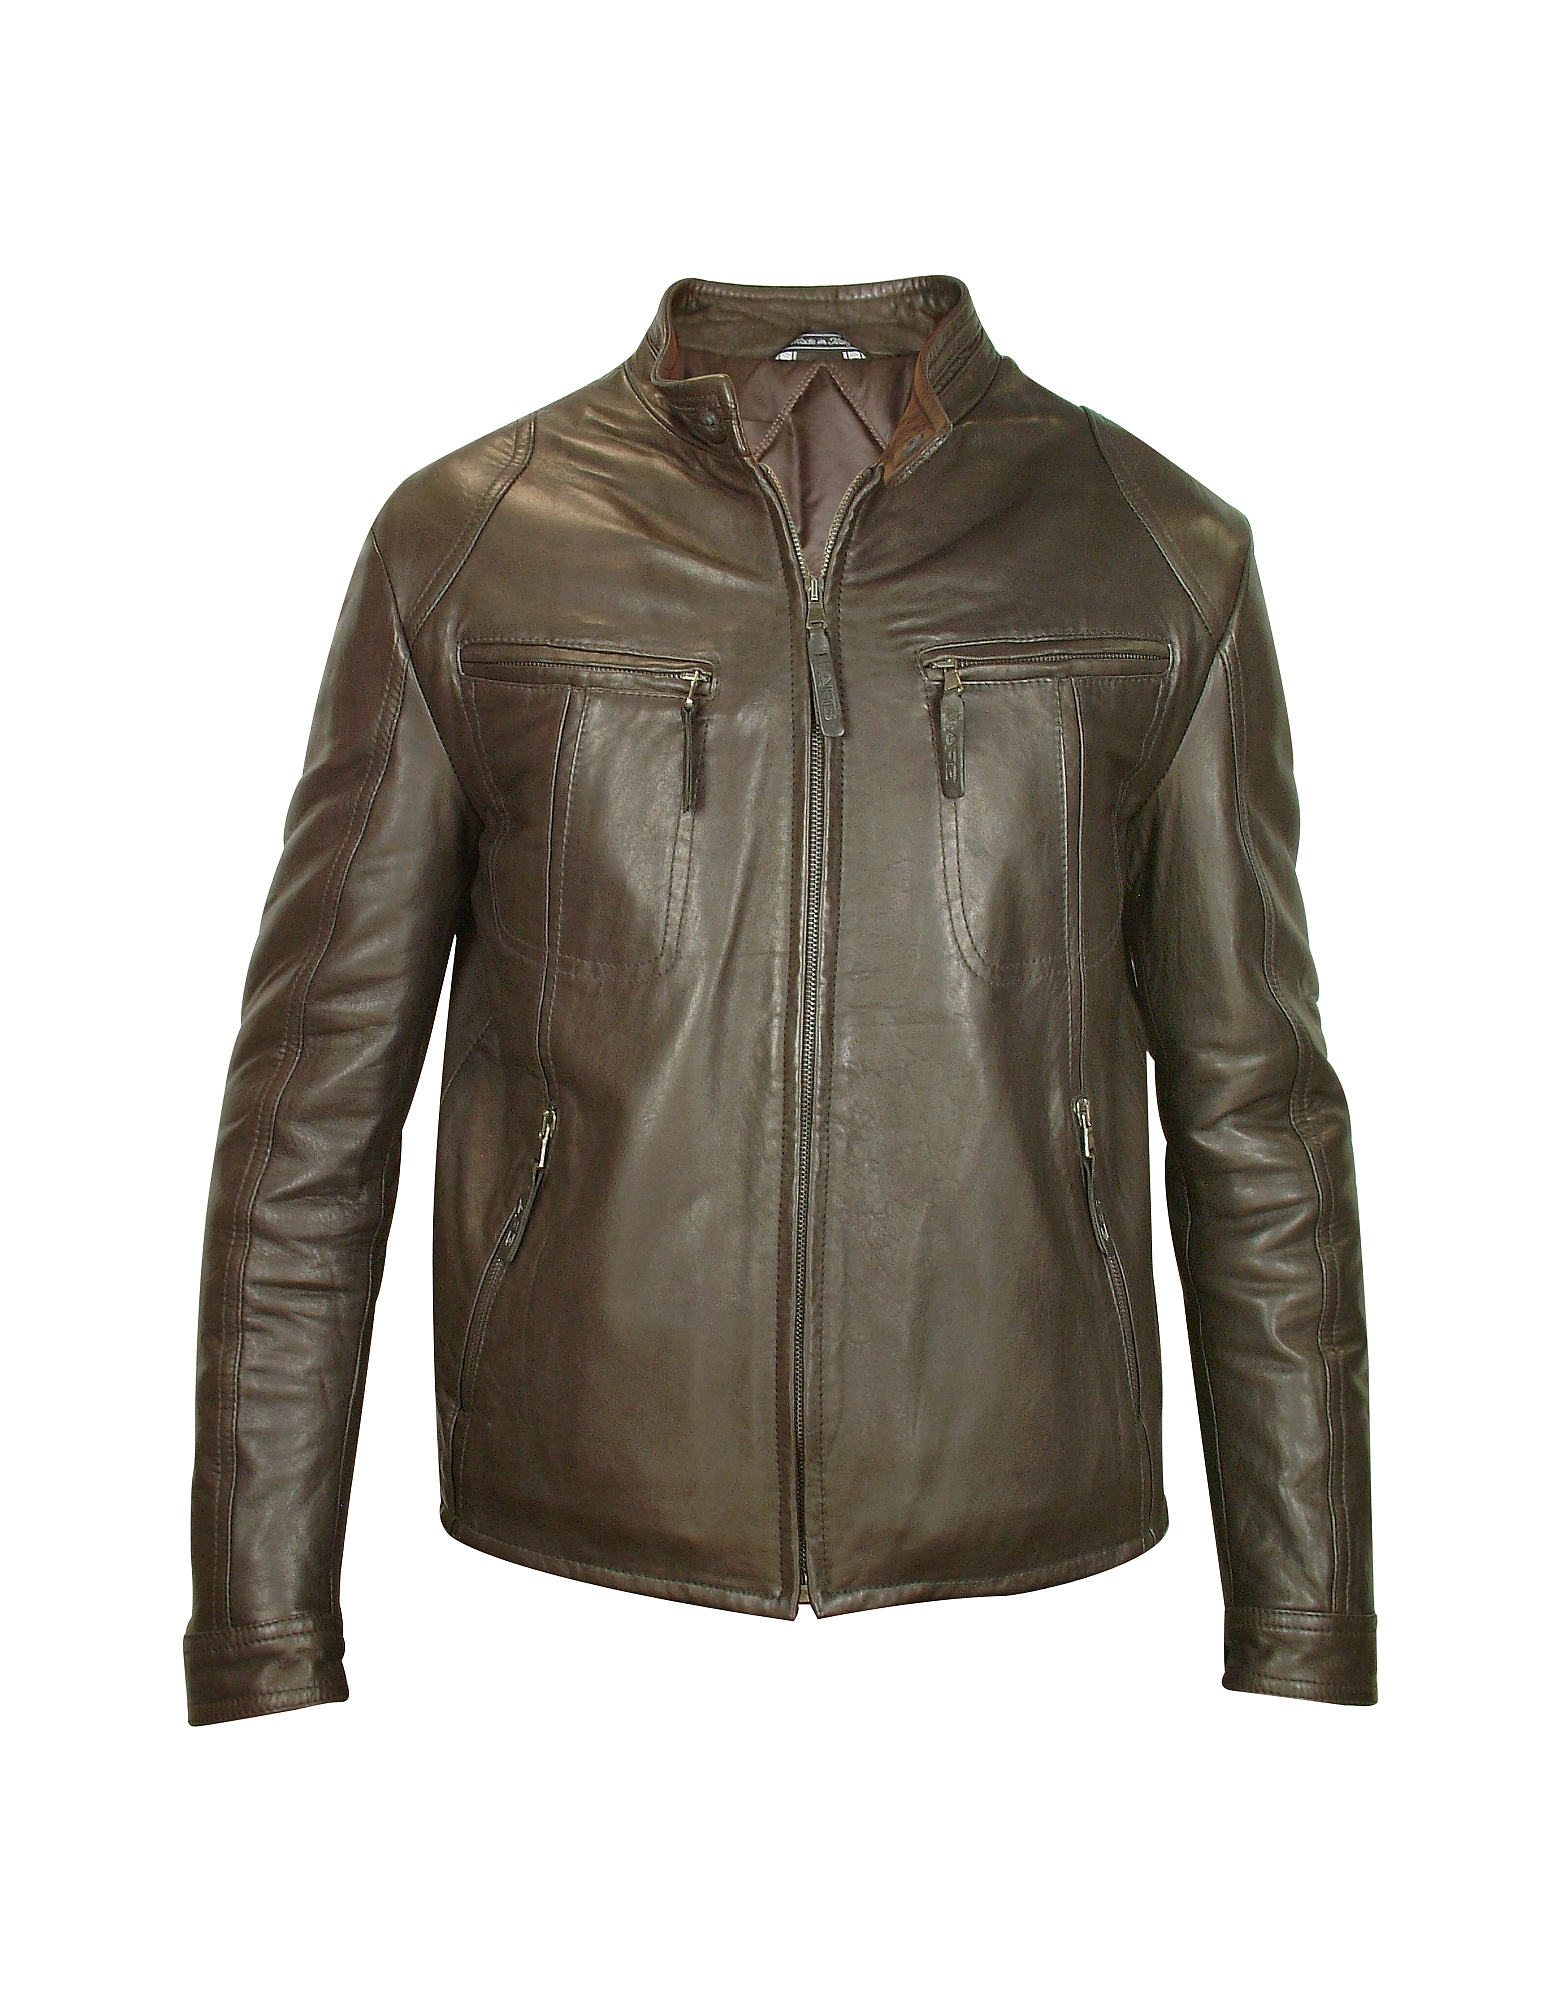 Forzieri Leather Jackets, Men's Dark Brown Genuine Leather Motorcycle Jacket